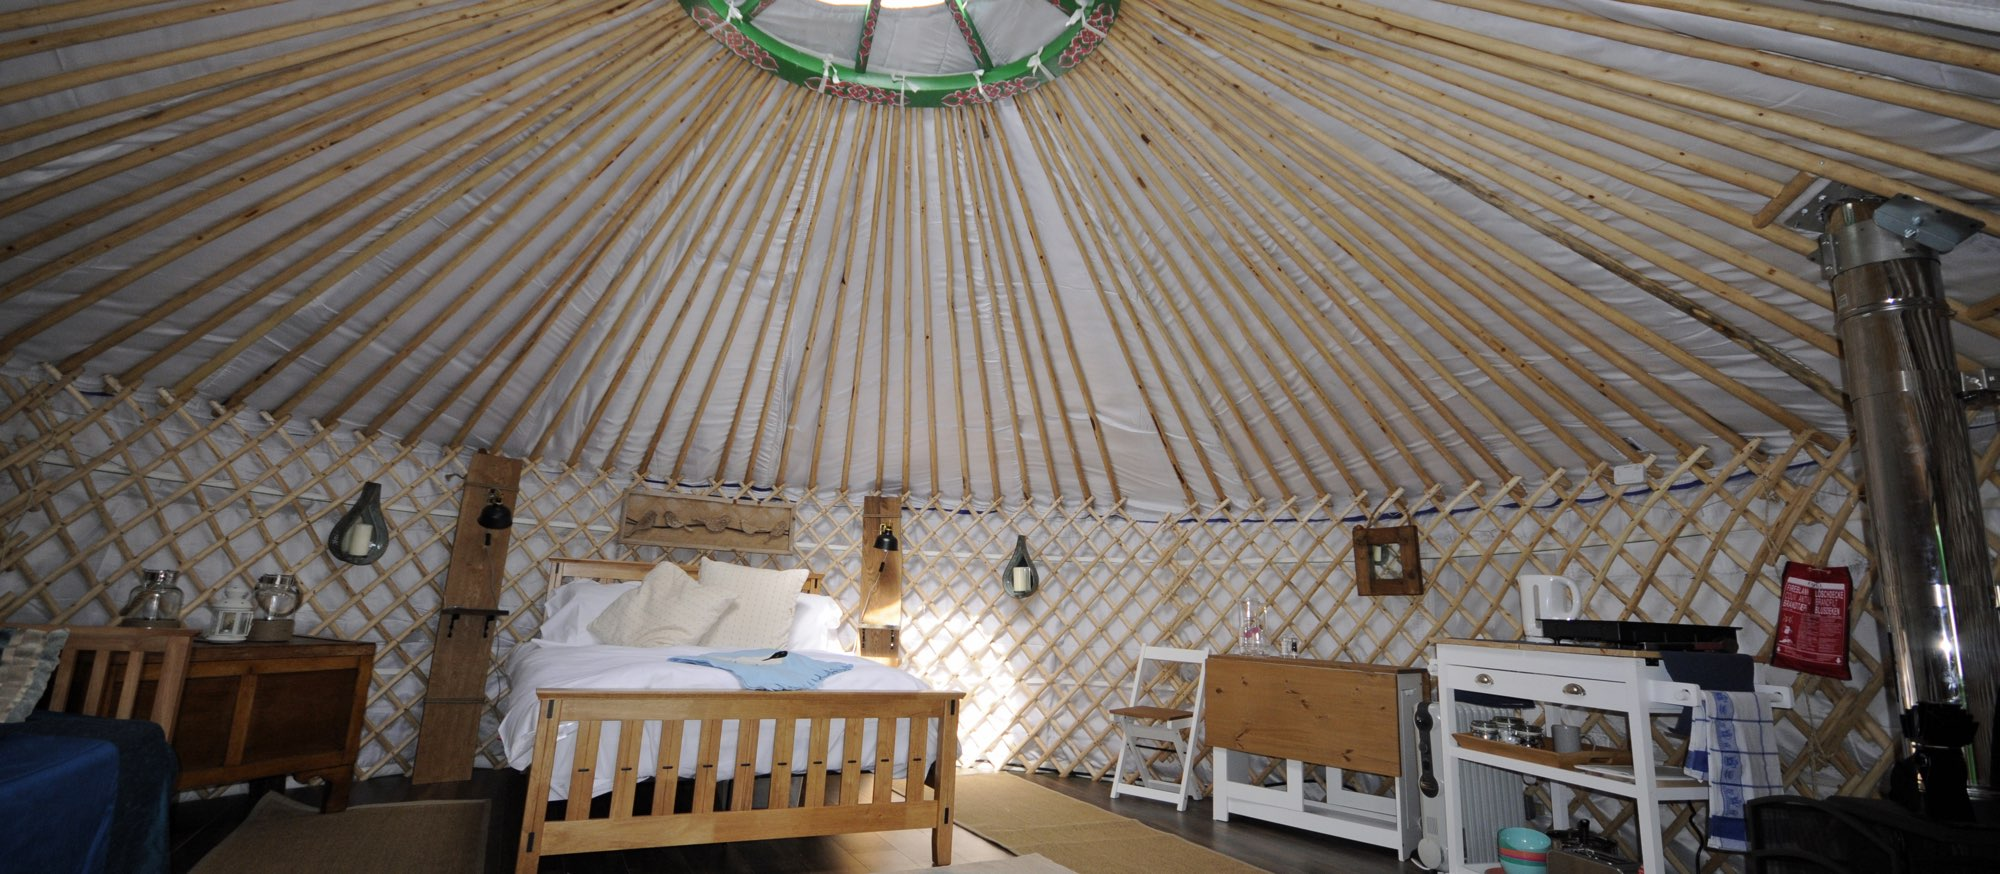 Glamping on the Hill, Mells, UK